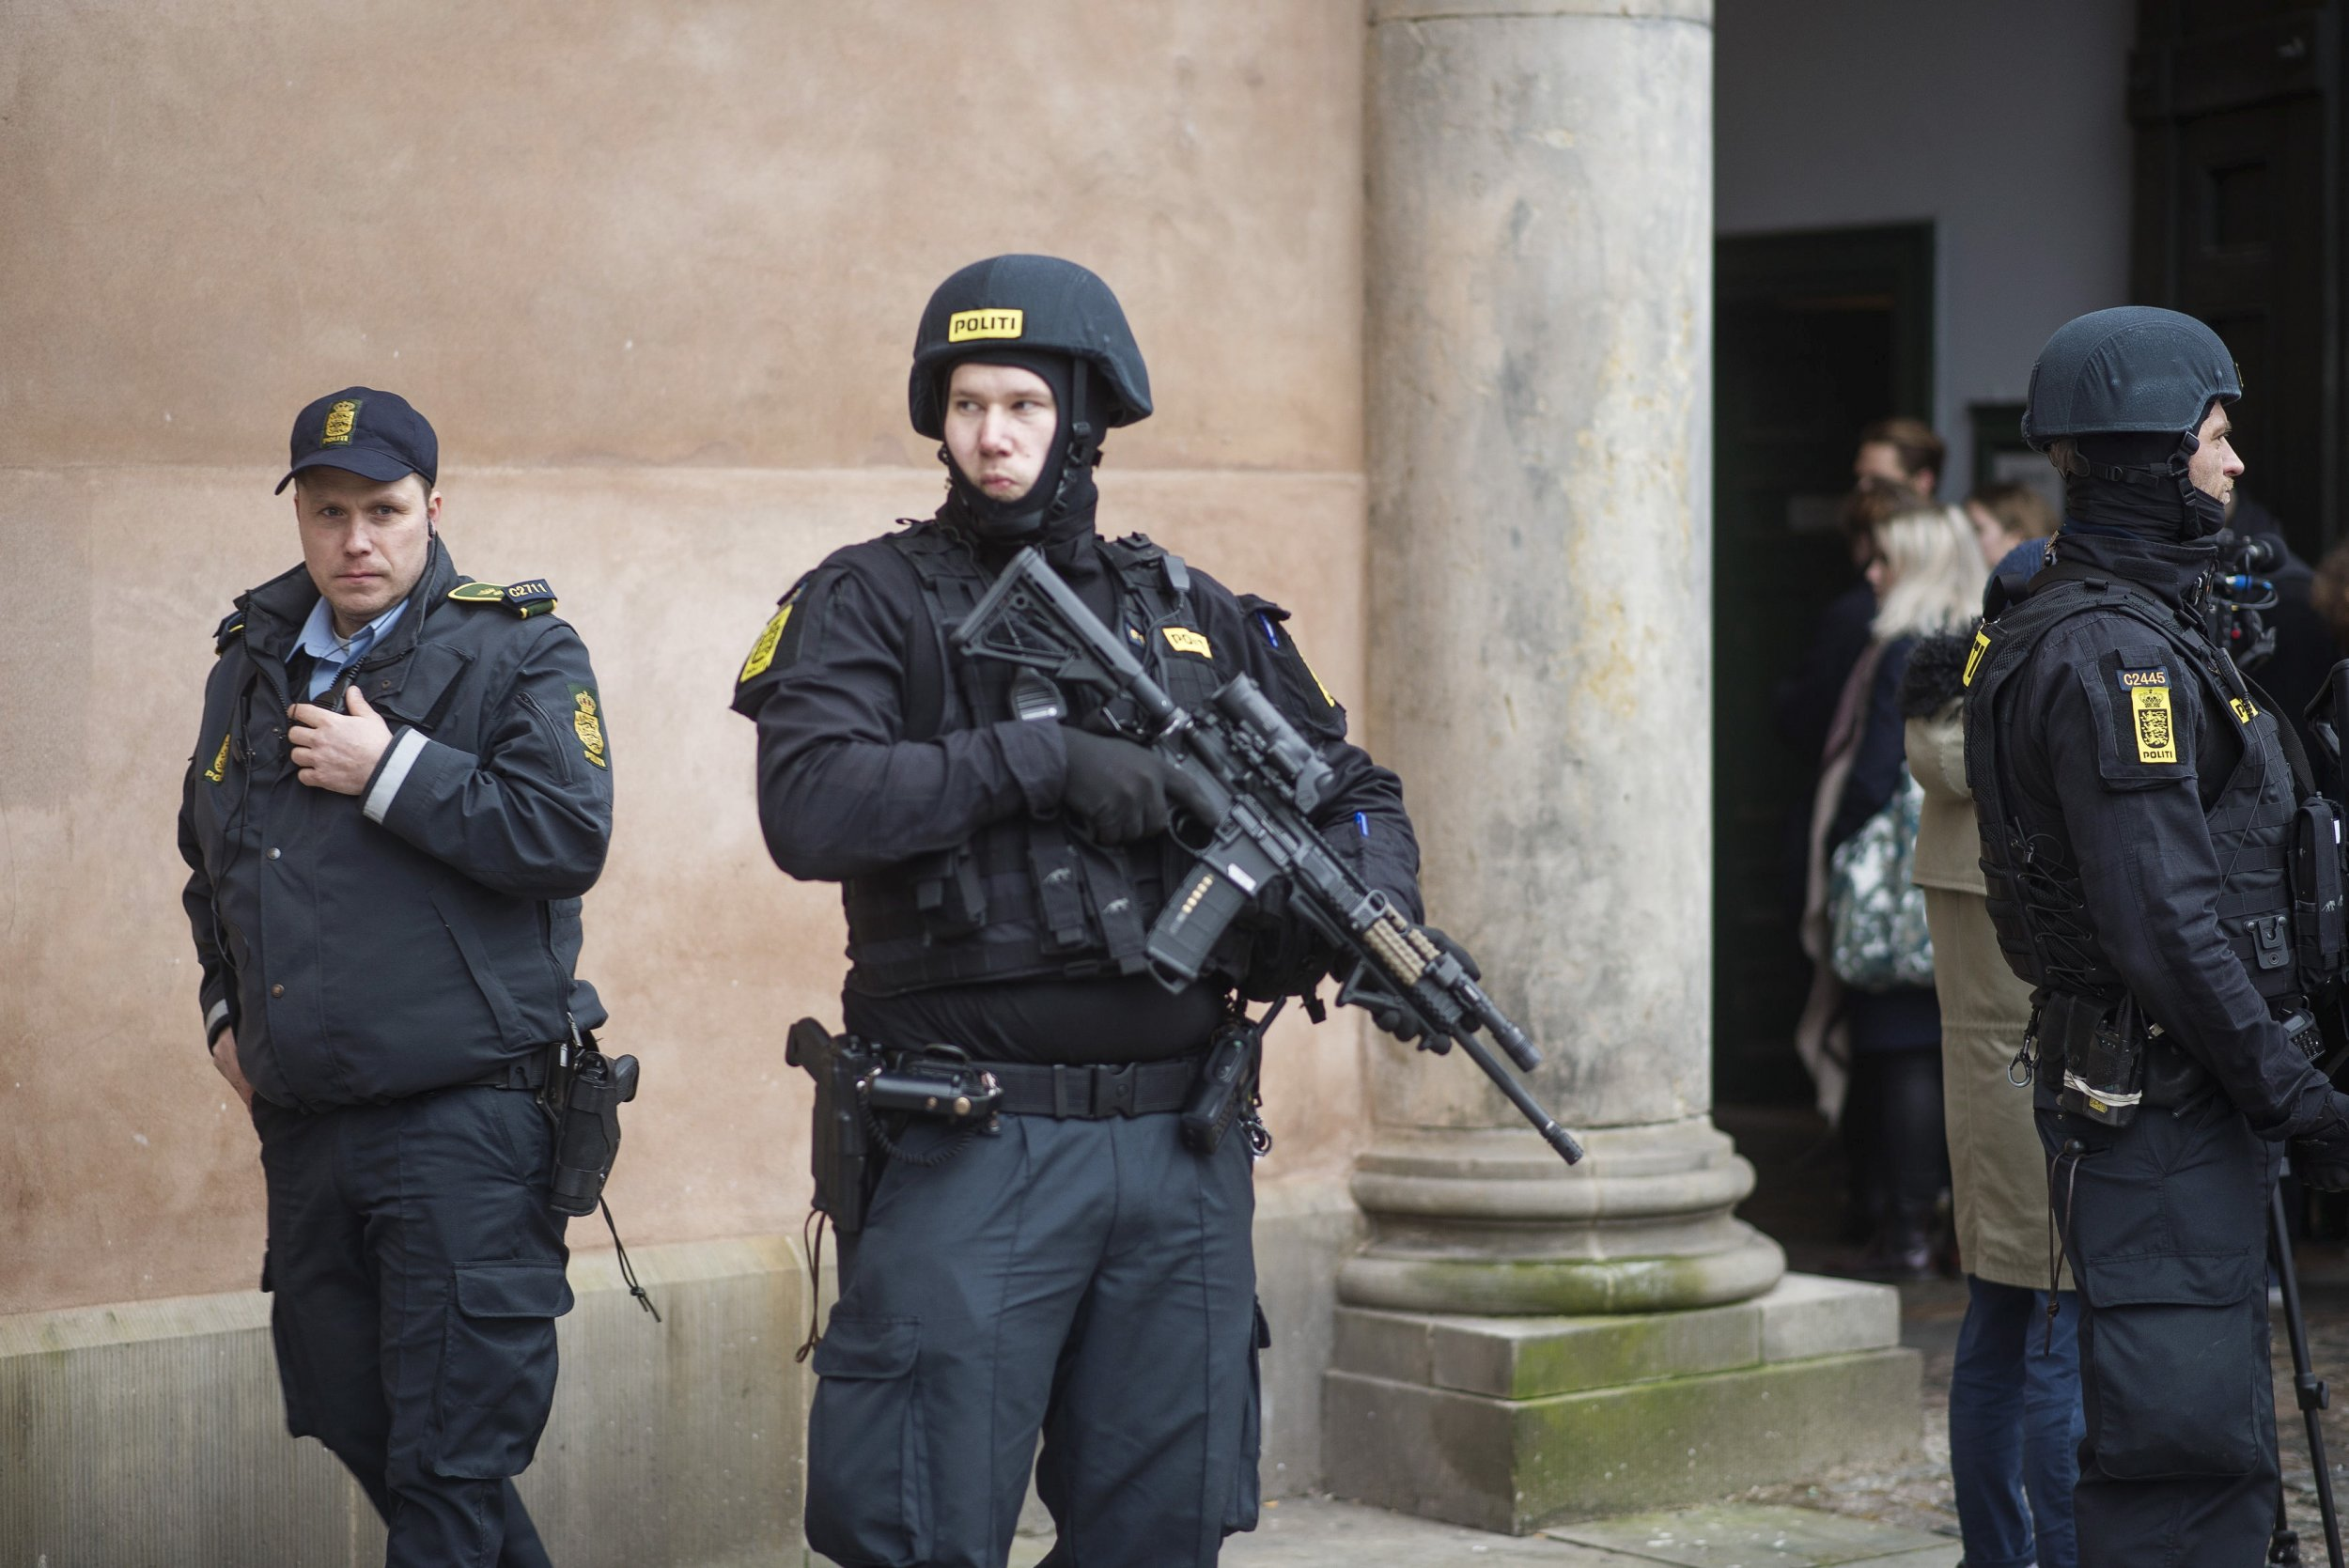 Denmark Europe Police ISIS